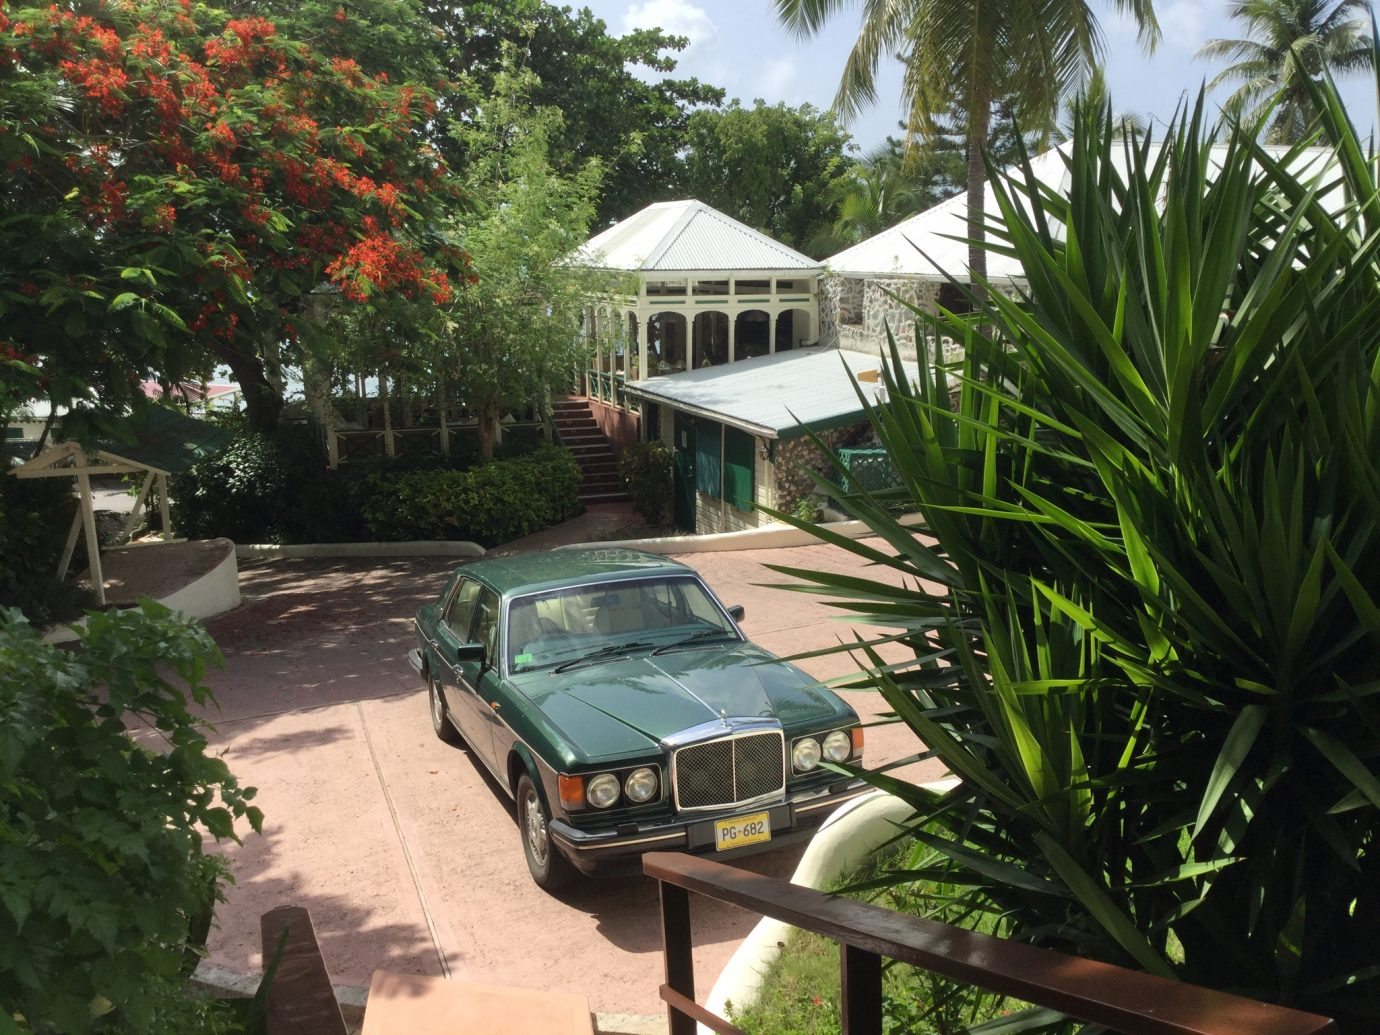 car in driveway in tropical setting